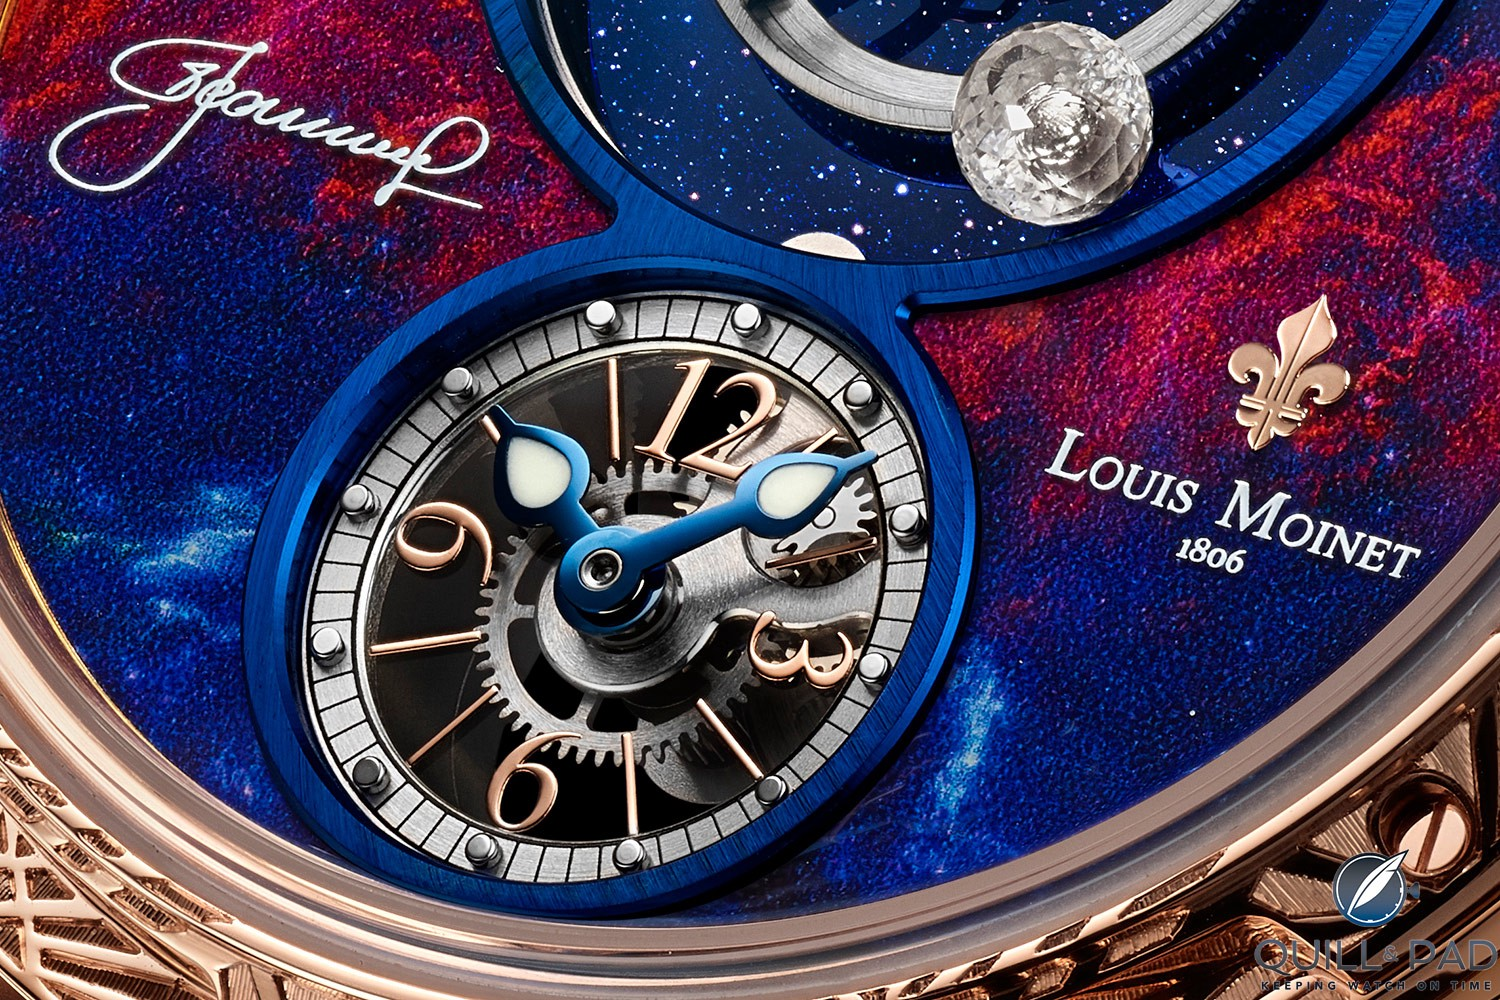 Time display subdial of the Louis Moinet Spacewalker